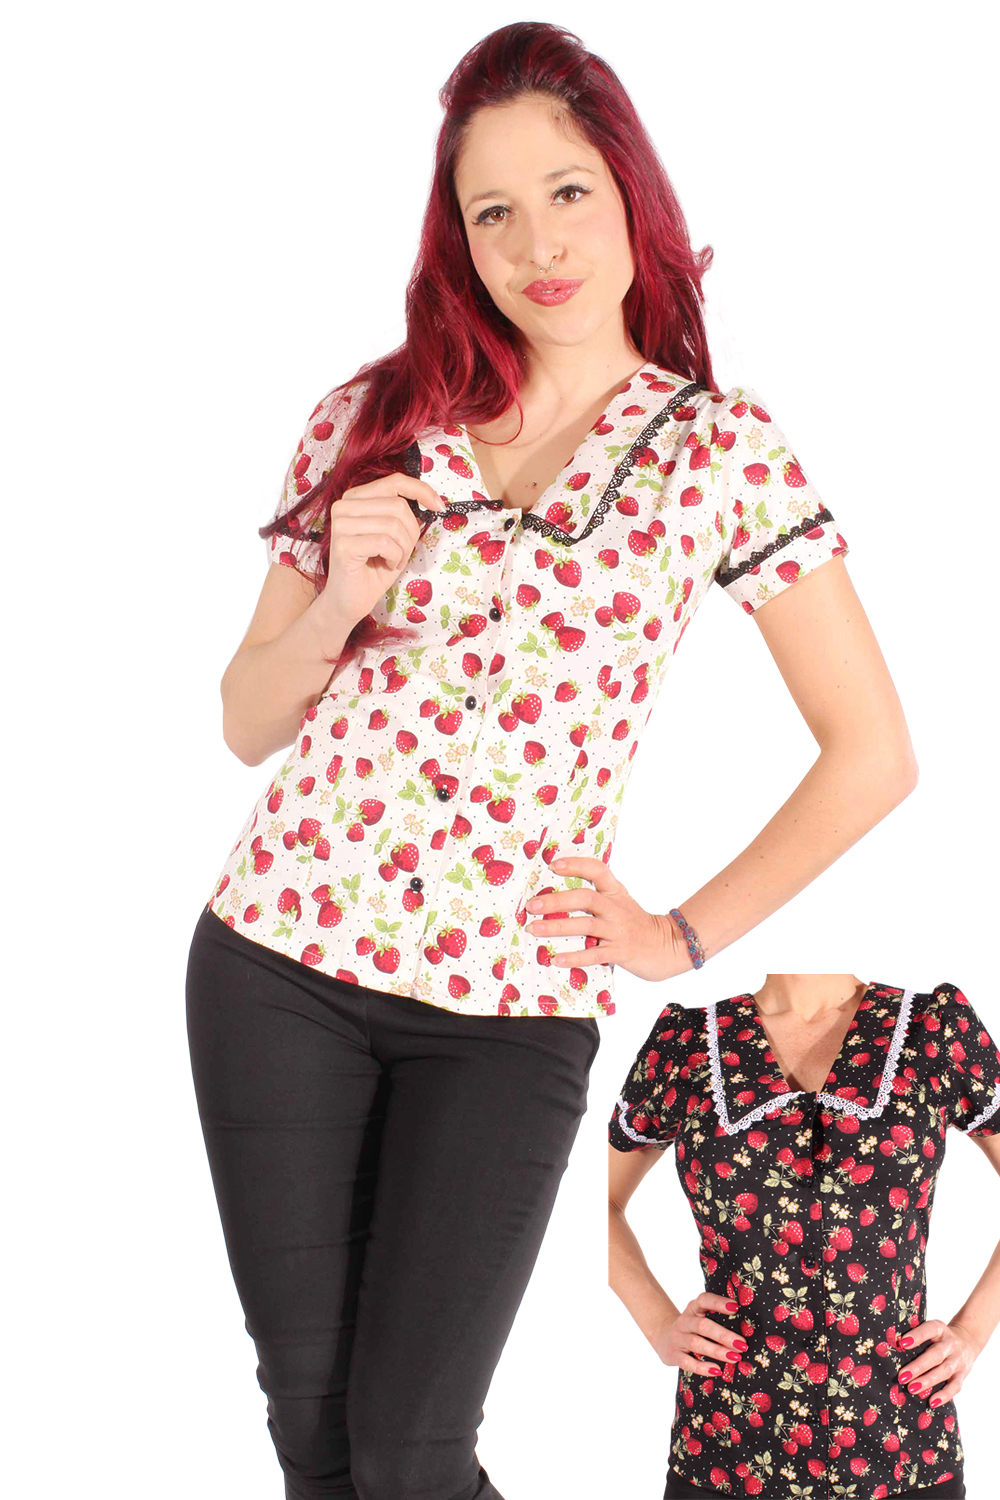 Punkte Erdbeer Polka Dots Rockabilly pin up Strawberry Bluse